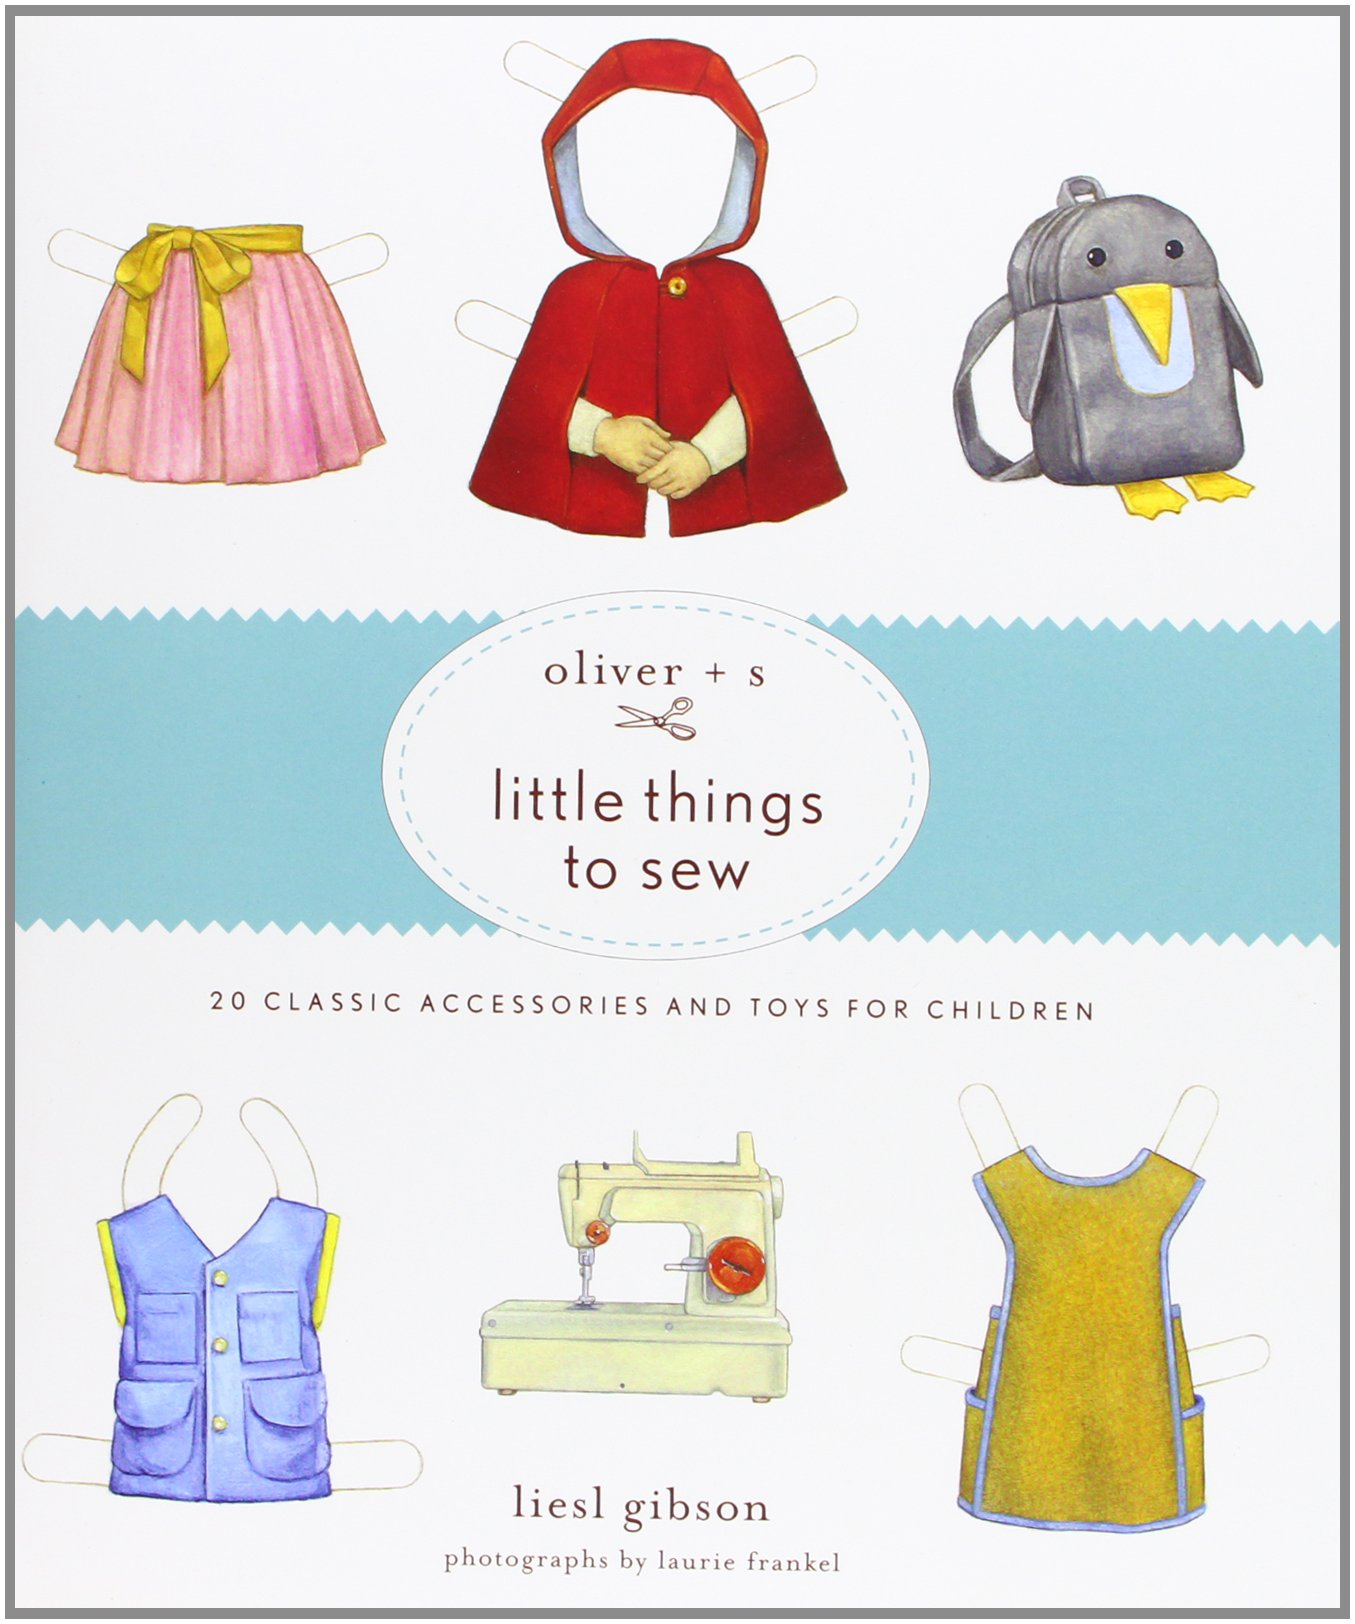 Oliver s little things to sew 20 classic accessories and toys oliver s little things to sew 20 classic accessories and toys for children inc liesl and company liesl gibson dan andreasen laurie frankel jeuxipadfo Images